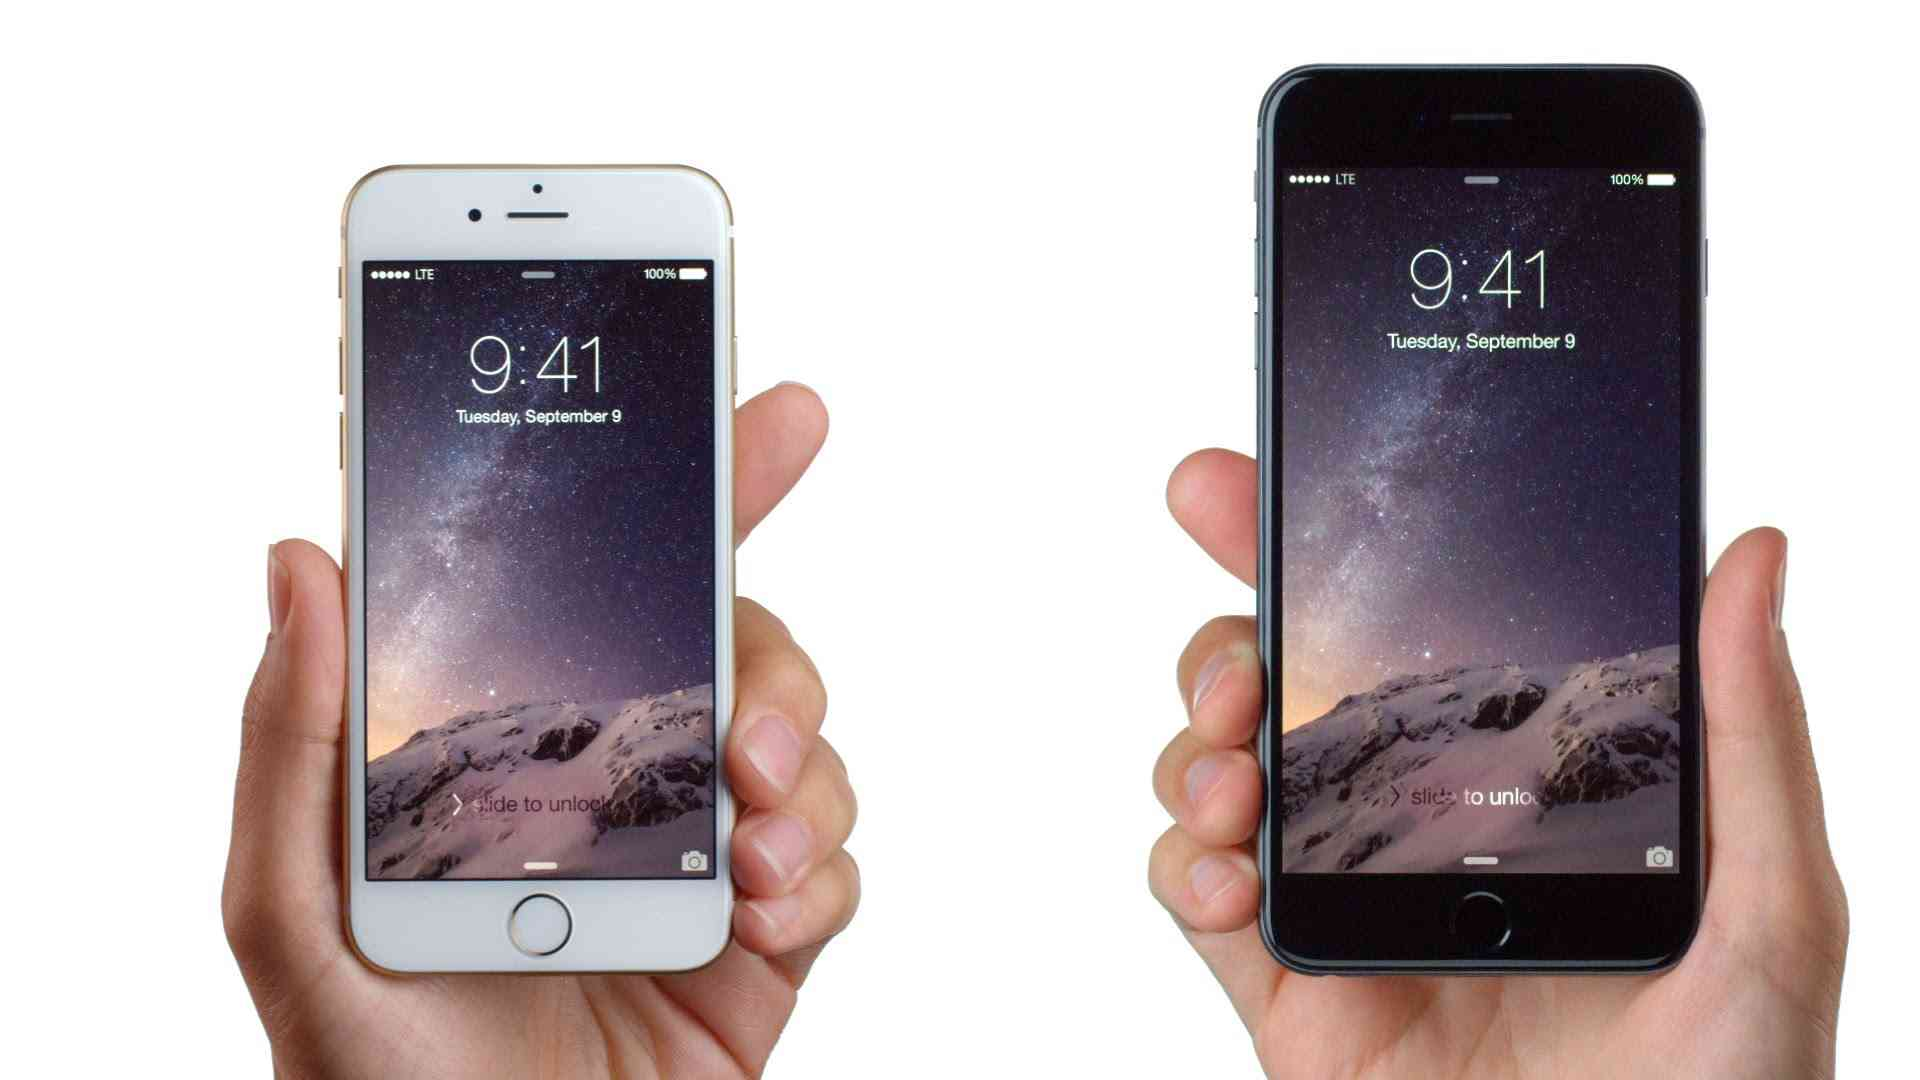 Apple - iPhone 6 and iPhone 6 Plus - TV Ad - Duo - YouTube